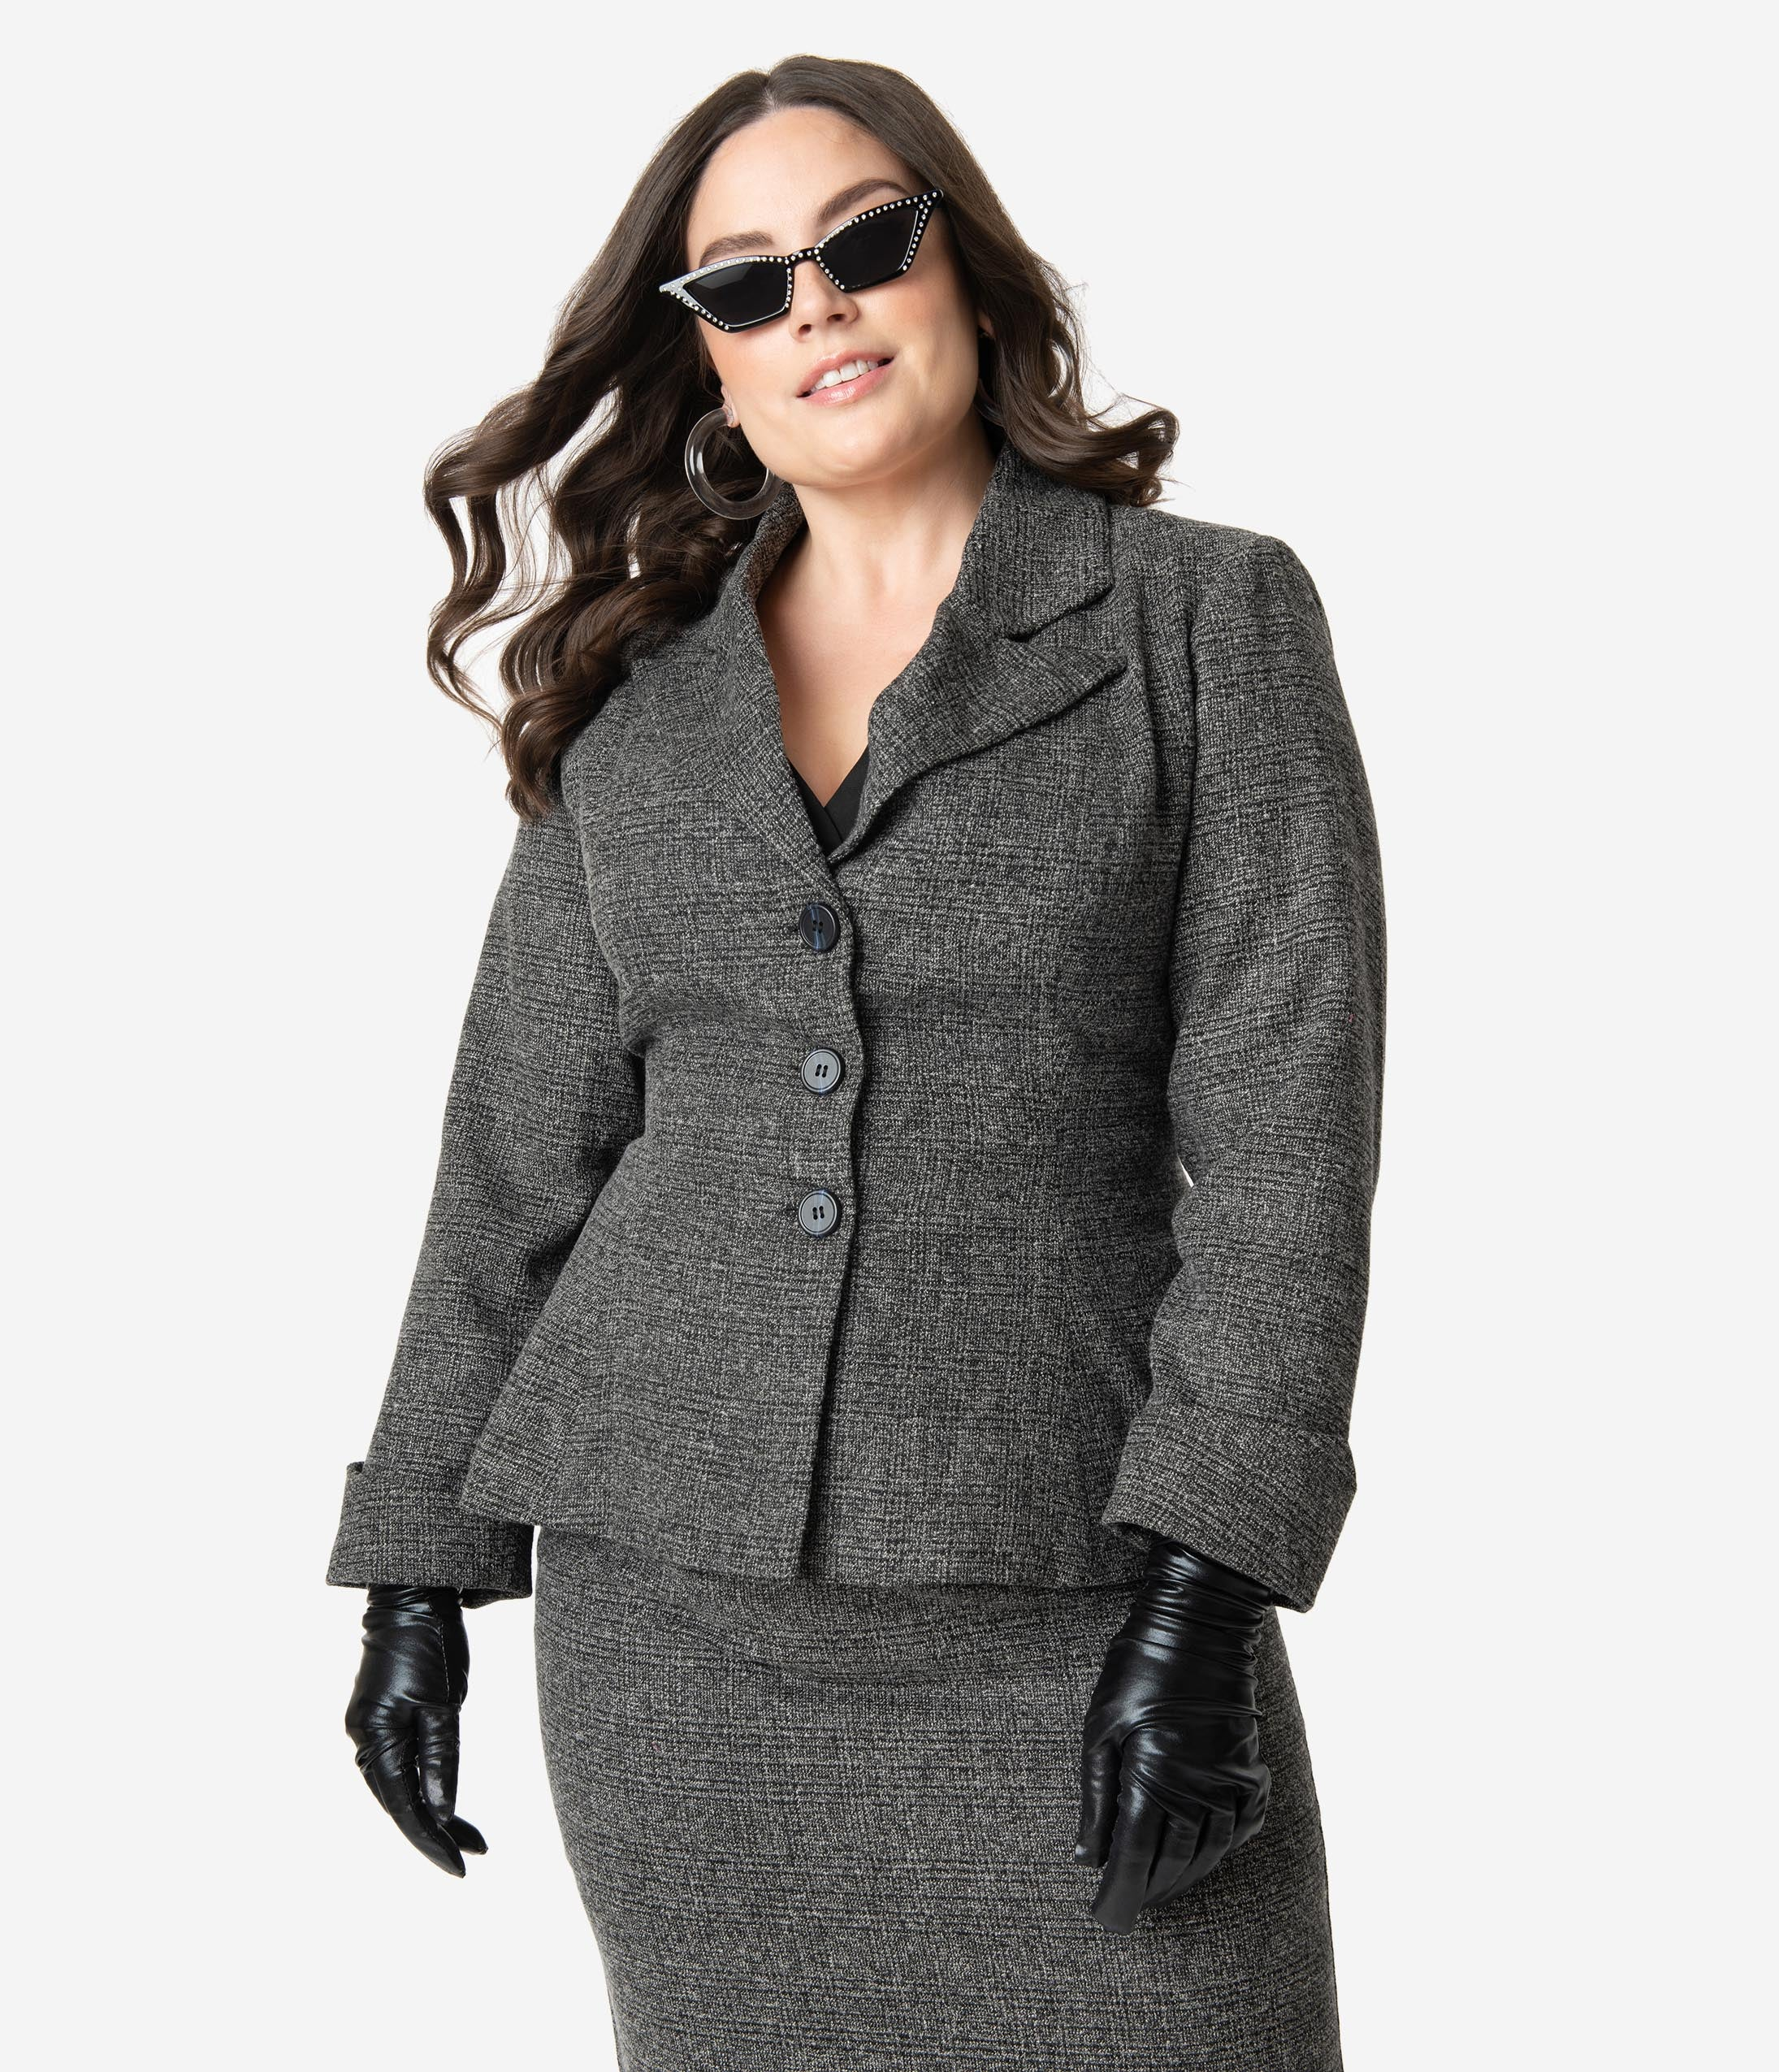 Vintage Coats & Jackets | Retro Coats and Jackets Micheline Pitt For Unique Vintage Plus Size Grey Tweed Rachael Suit Jacket $118.00 AT vintagedancer.com